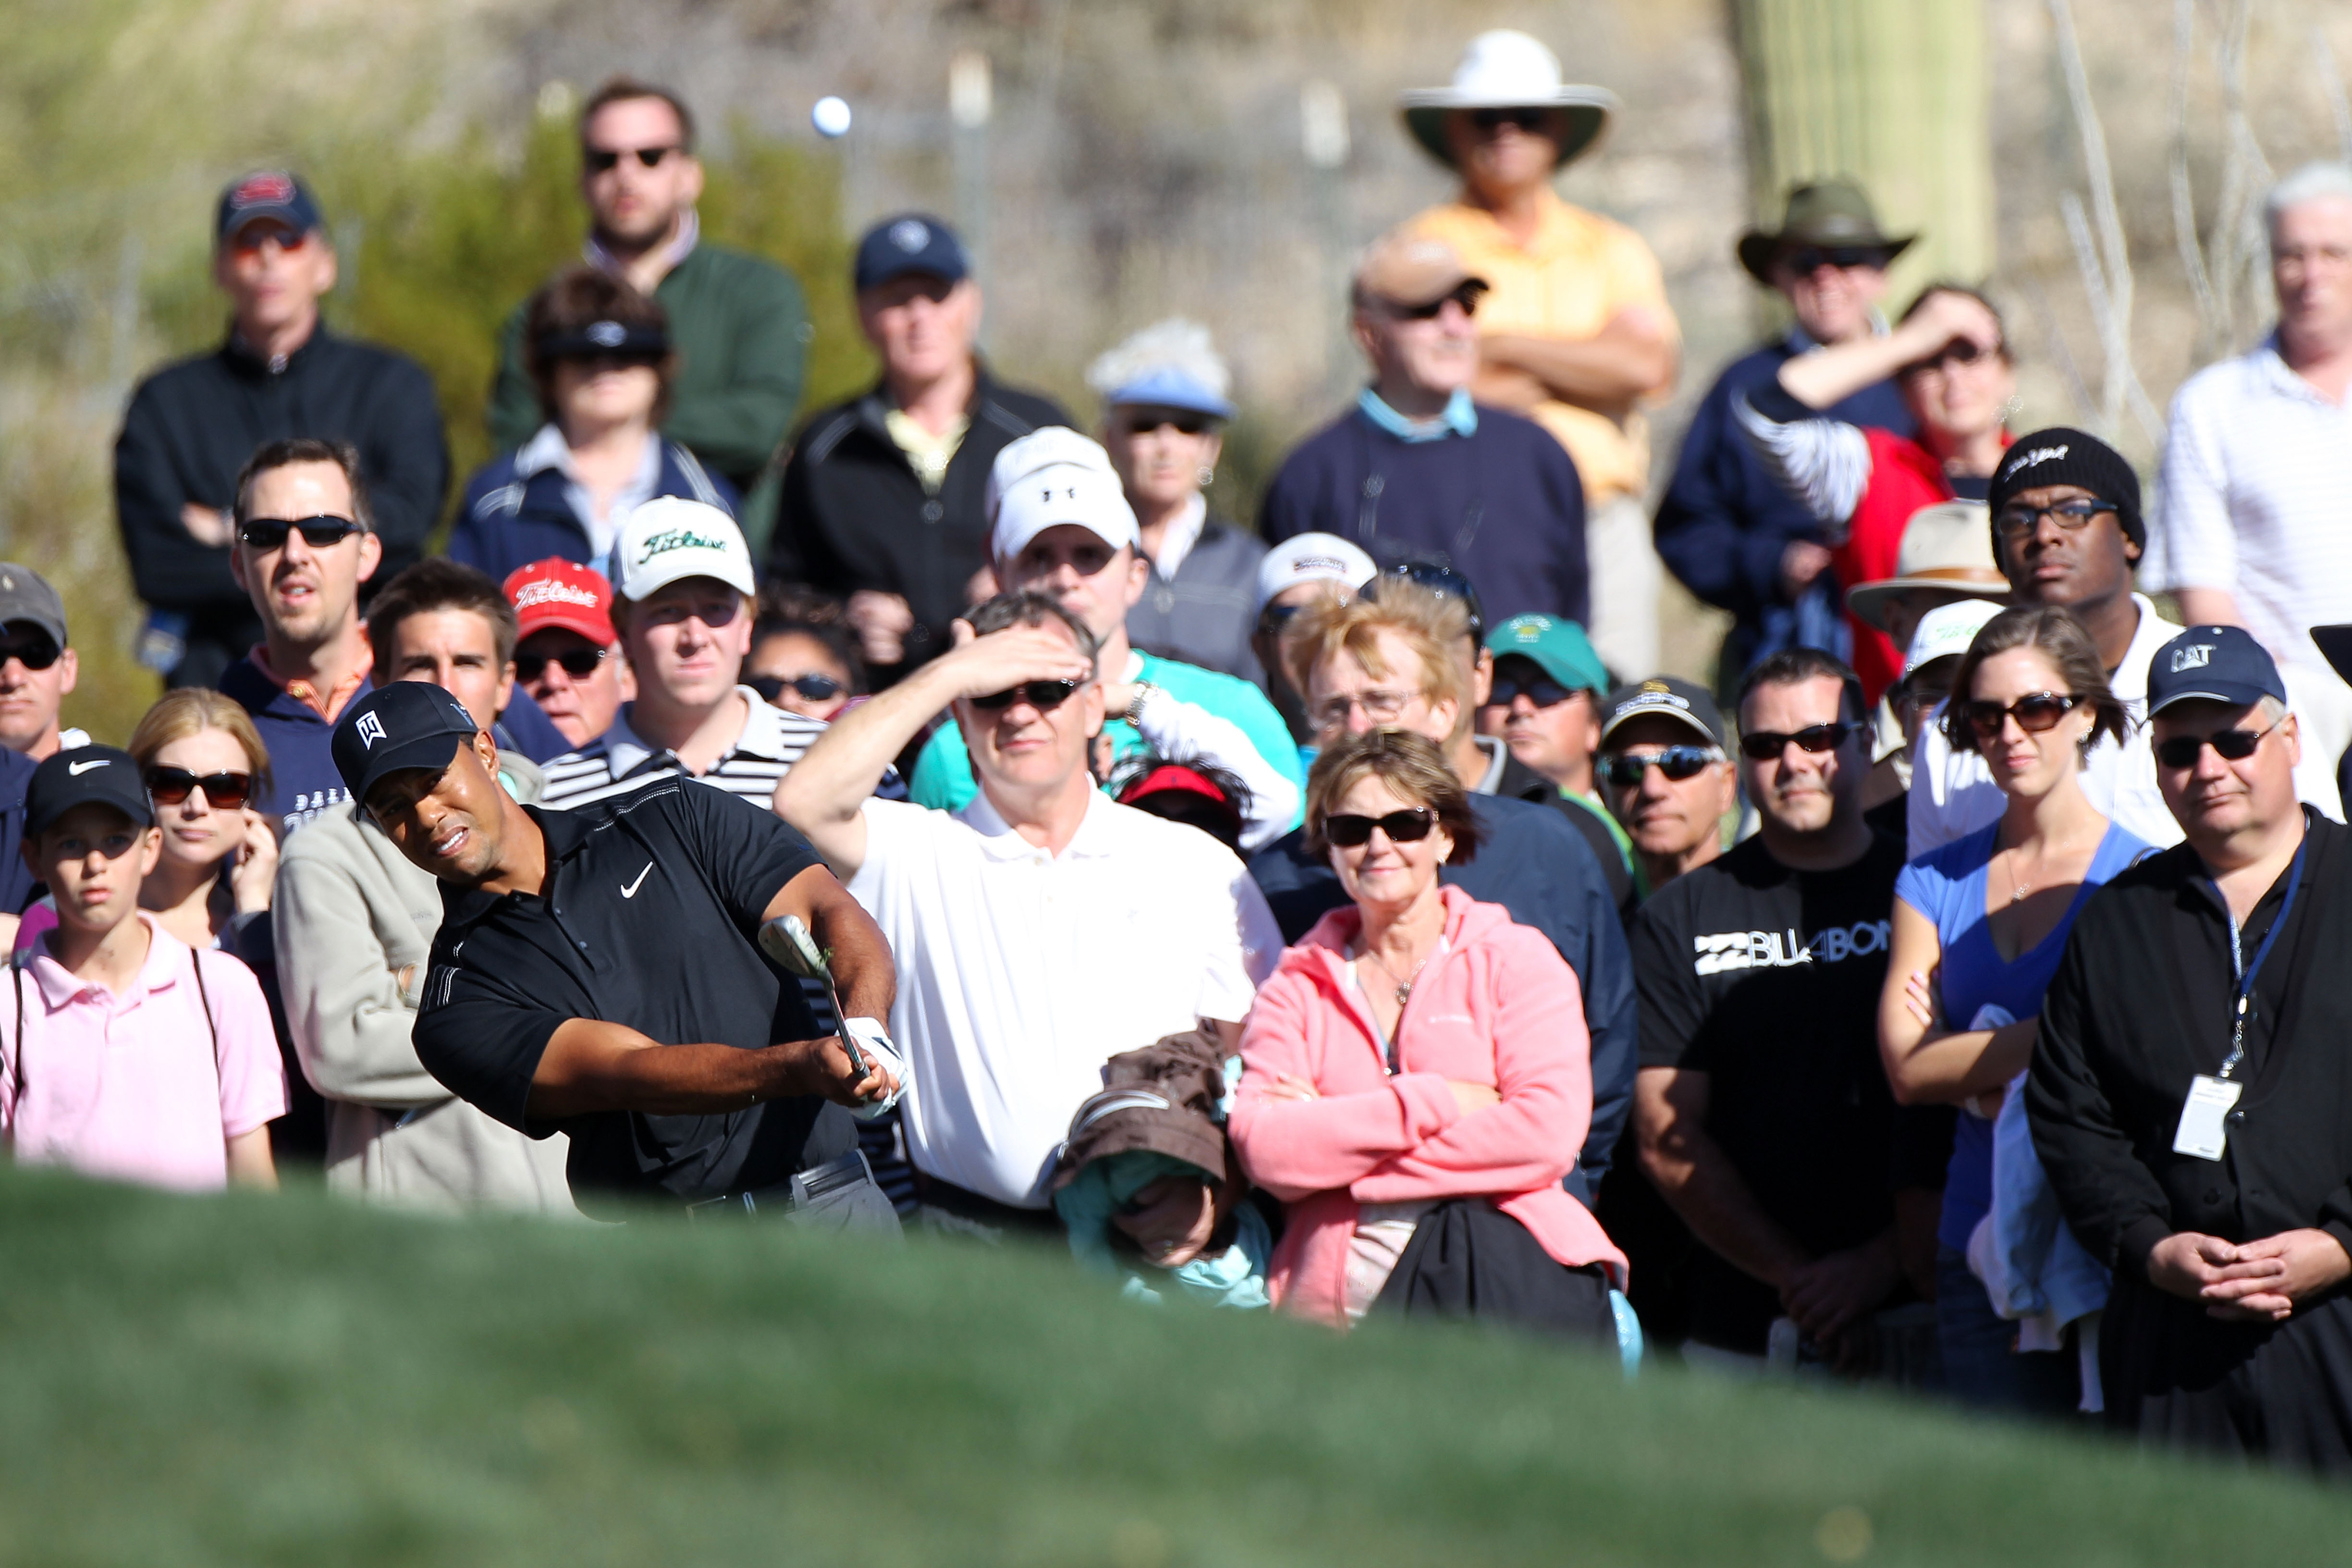 MARANA, AZ - FEBRUARY 23:  Tiger Woods hits an approach shot on the 15th hole as a gallery of fans looks on during the first round of the Accenture Match Play Championship at the Ritz-Carlton Golf Club on February 23, 2011 in Marana, Arizona.  (Photo by S